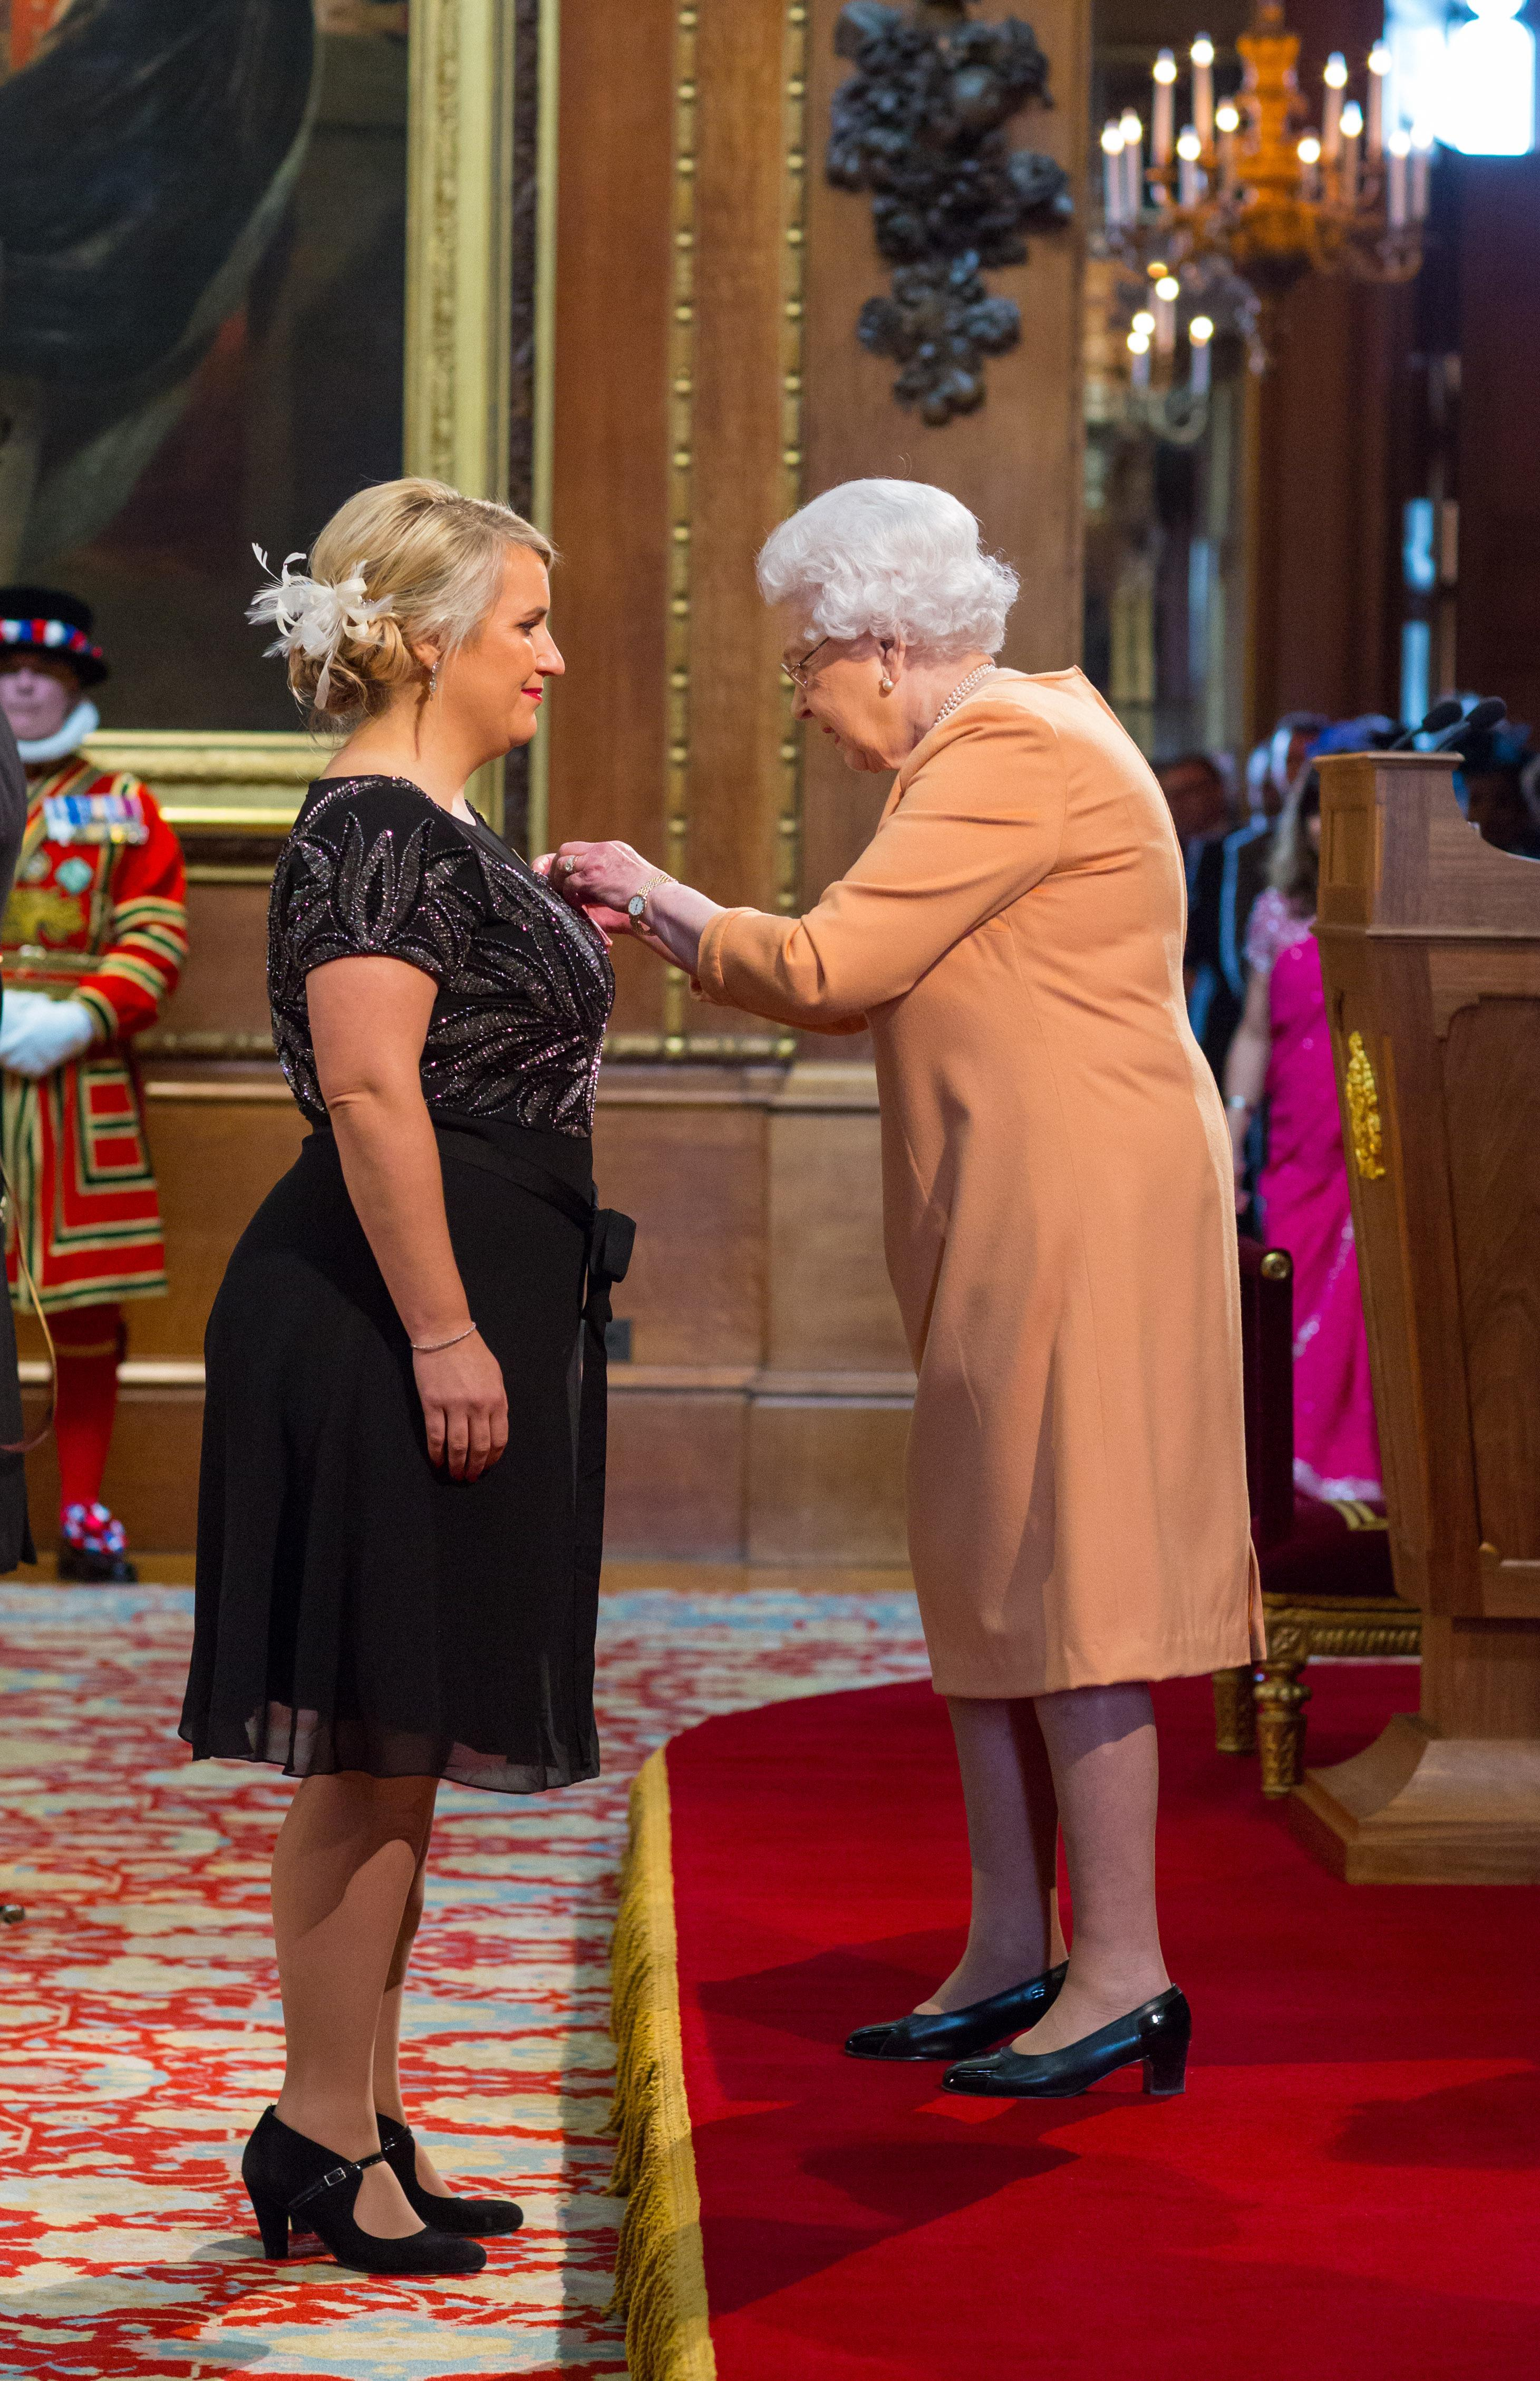 Hayes receiving an MBE from the Queen in 2016 for services to football